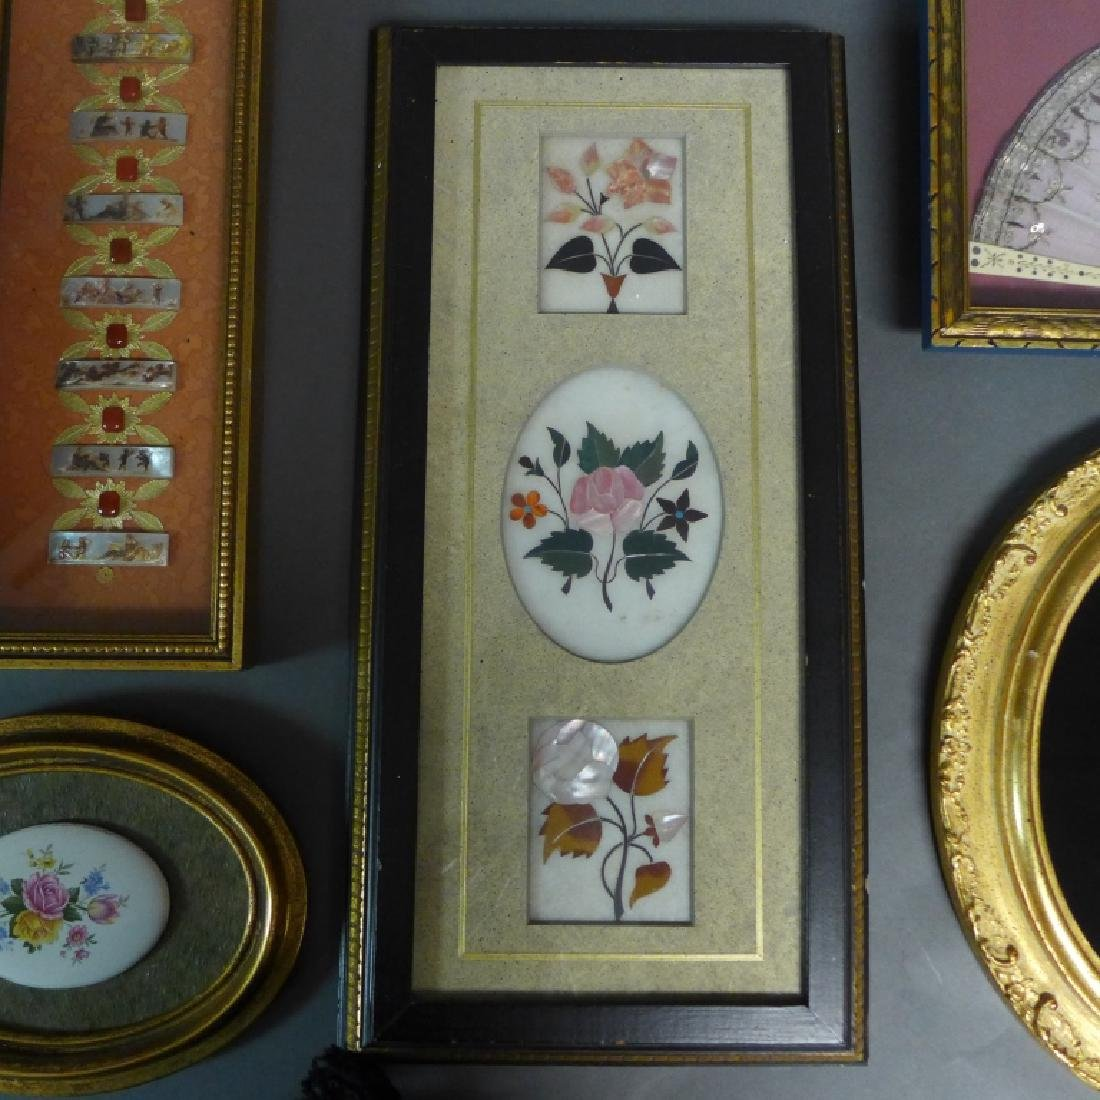 Framed Art by Saxon & Clemens Pictures - 4